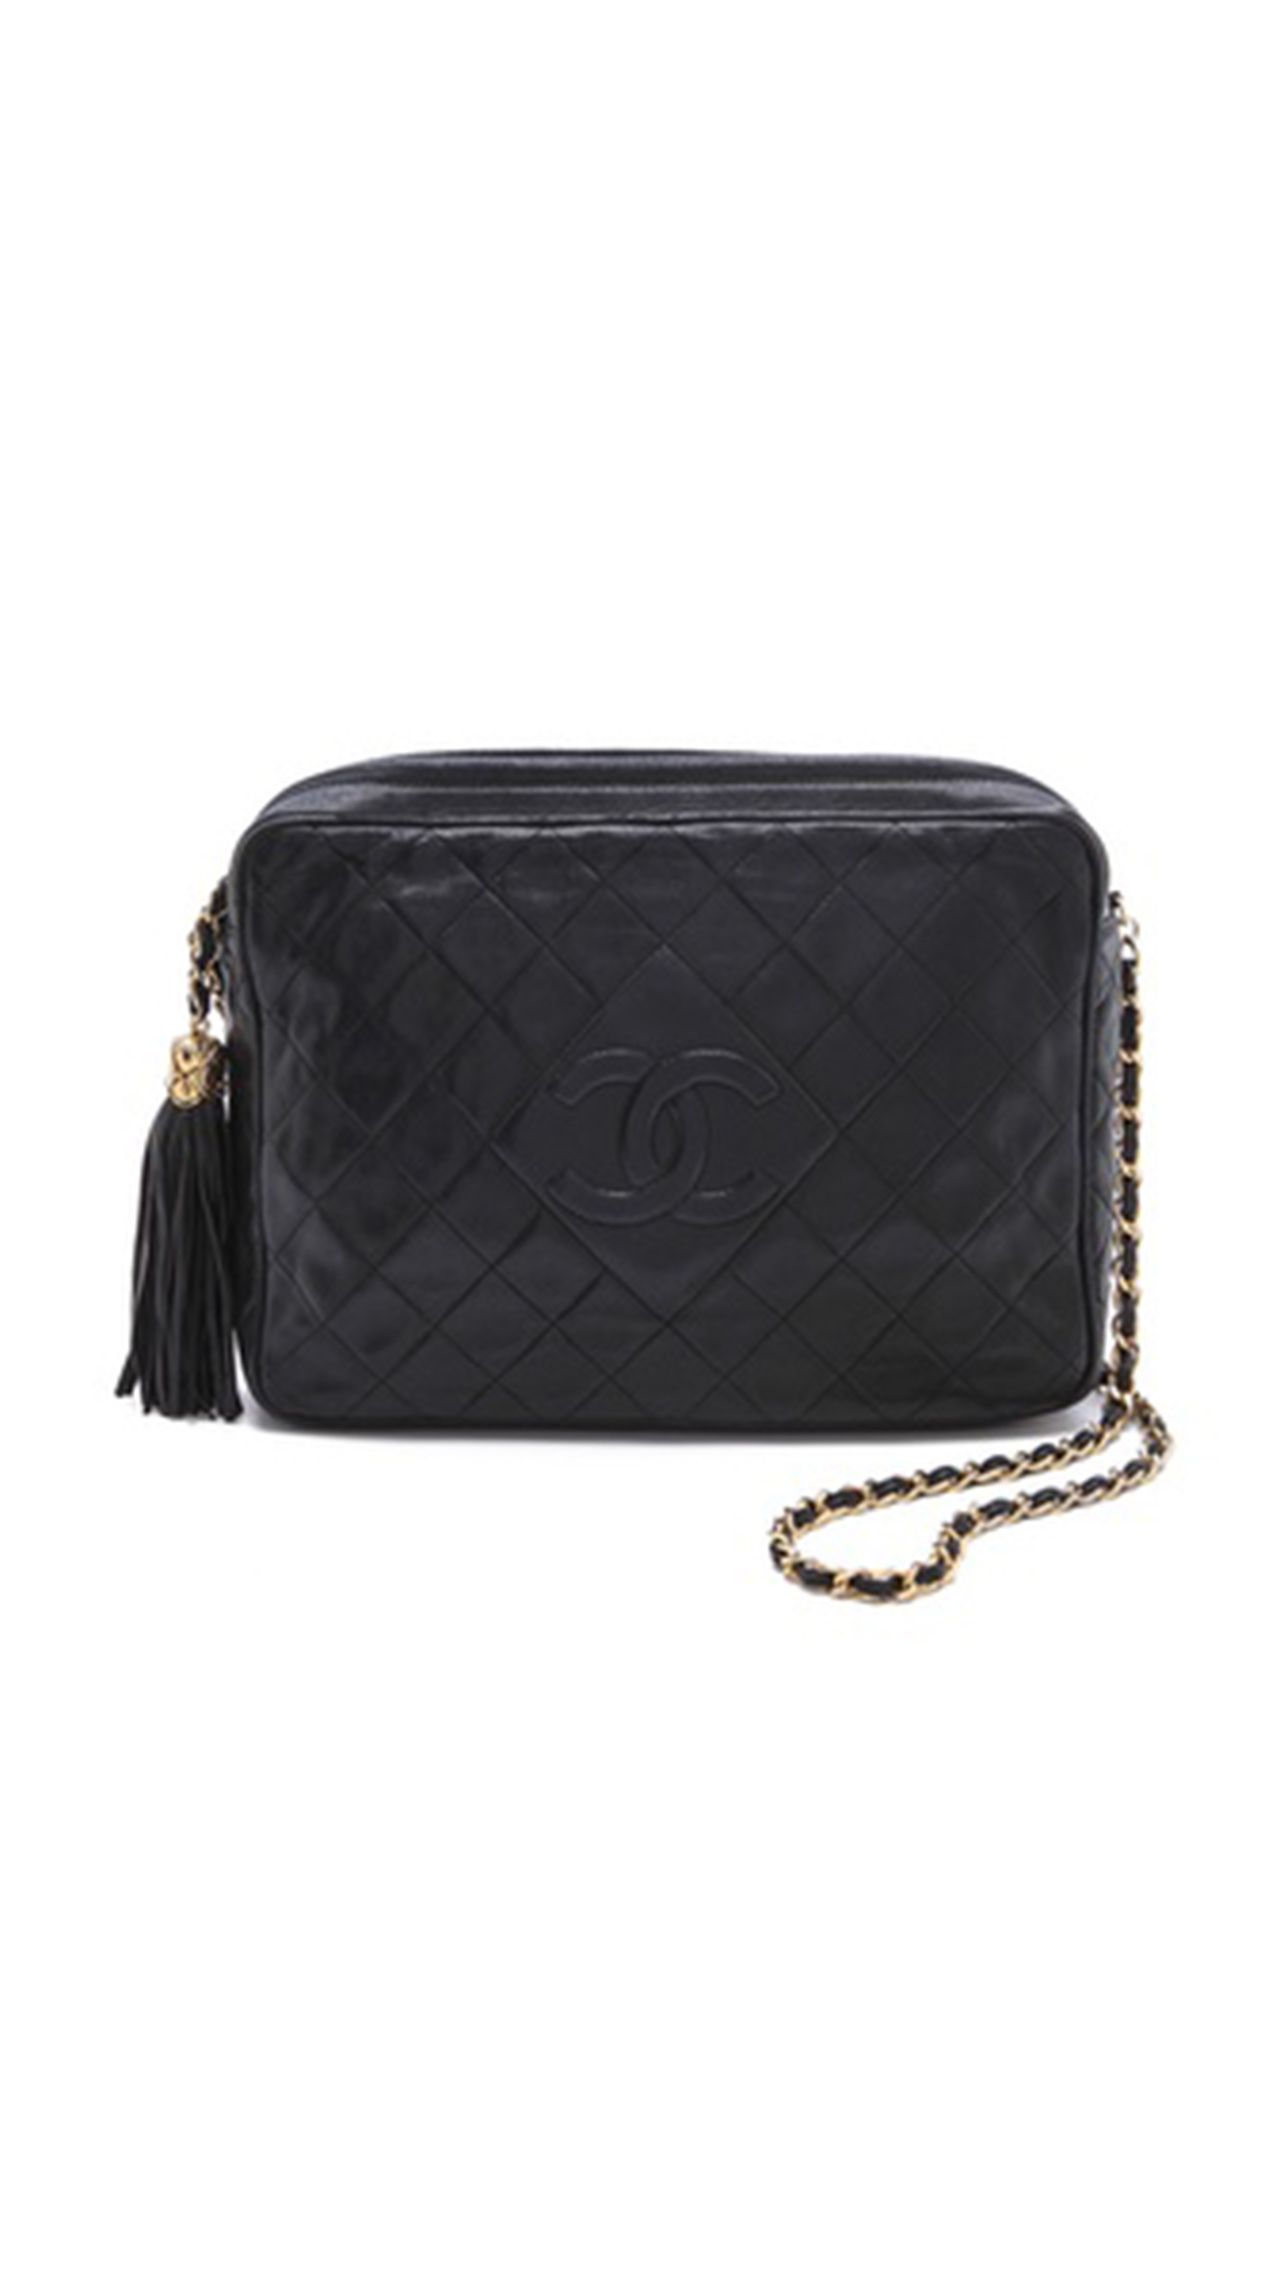 c34ef85c8e92 Vintage Chanel Camera Bag: Fall Trend We Love: Quilted Leather. ModaMob  Fashion and Style Lookbooks.